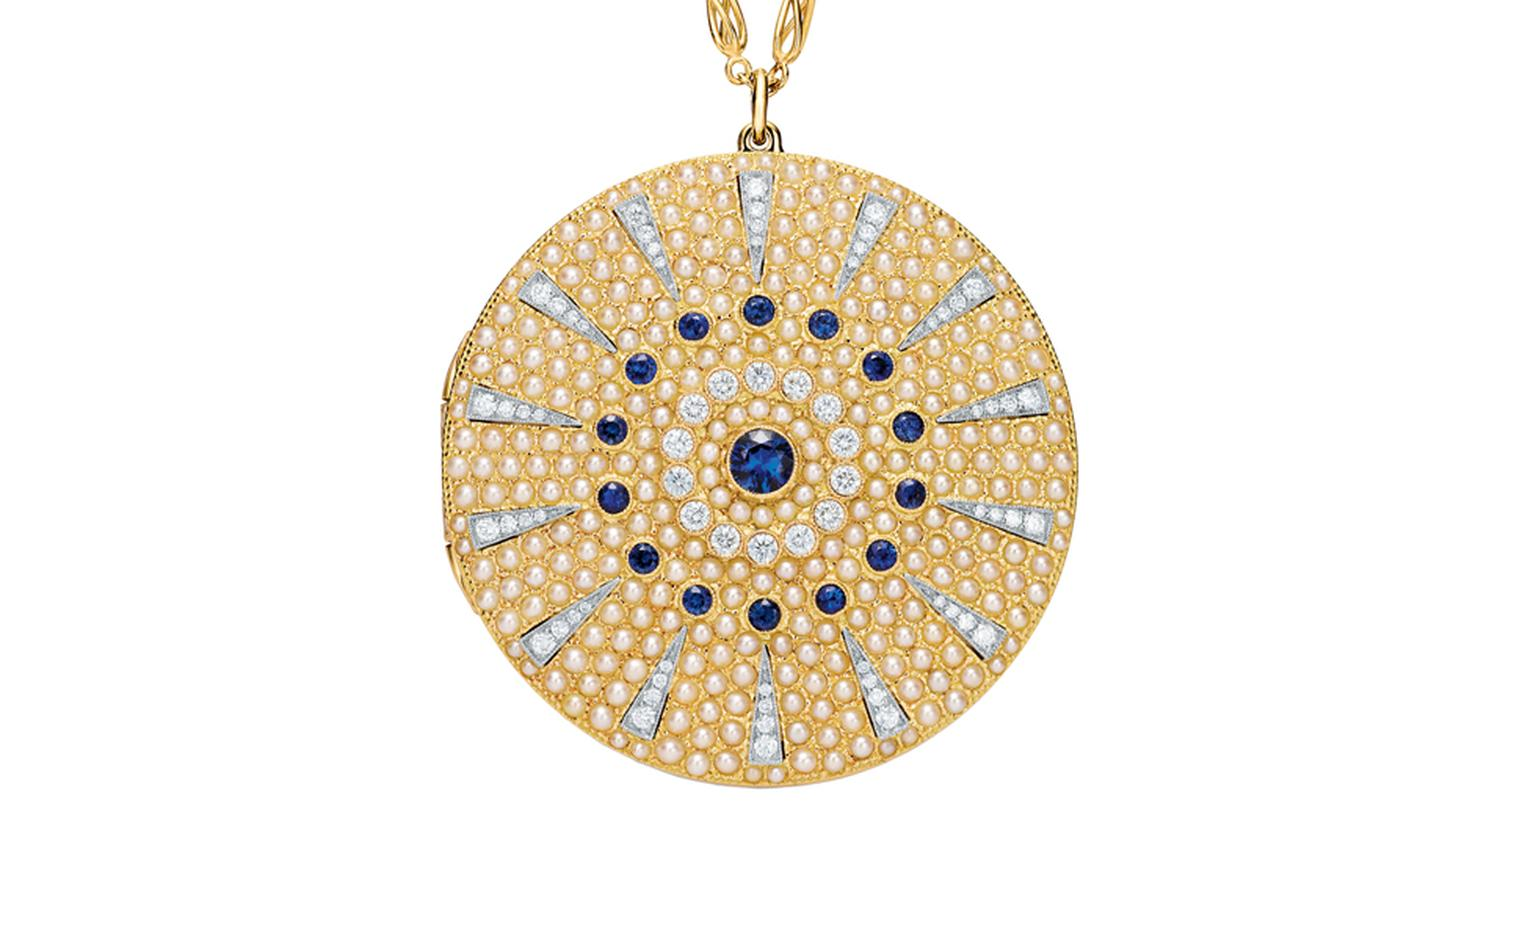 TIFFANY, diamond and sapphire locket. Price from $25,000